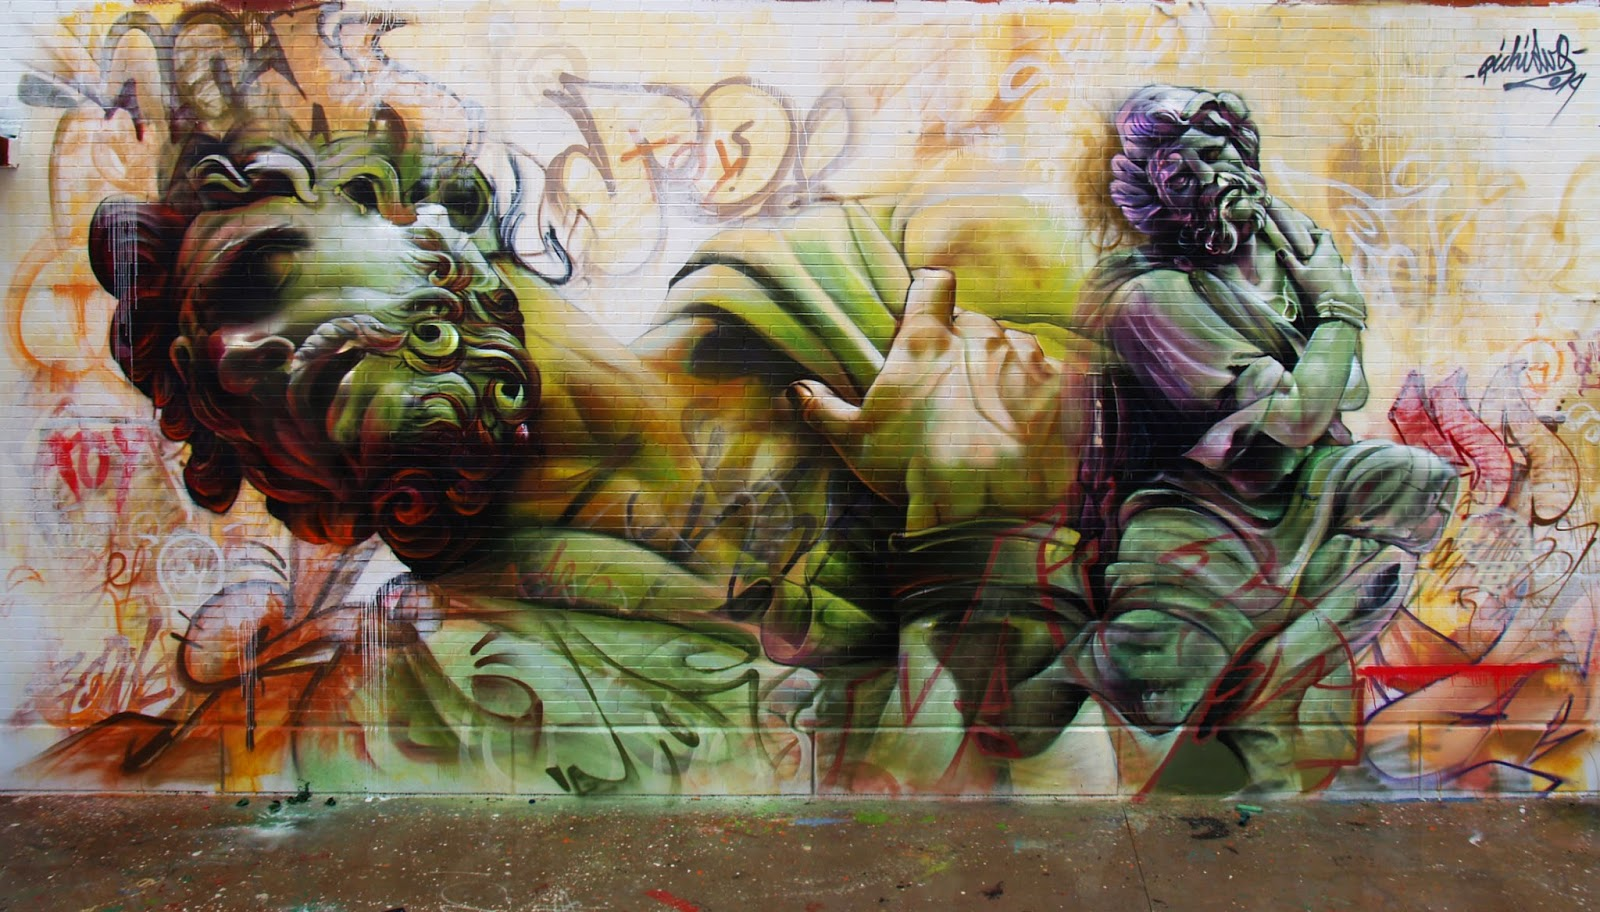 Pichiavo new mural almeria spain streetartnews for Call for mural artists 2014